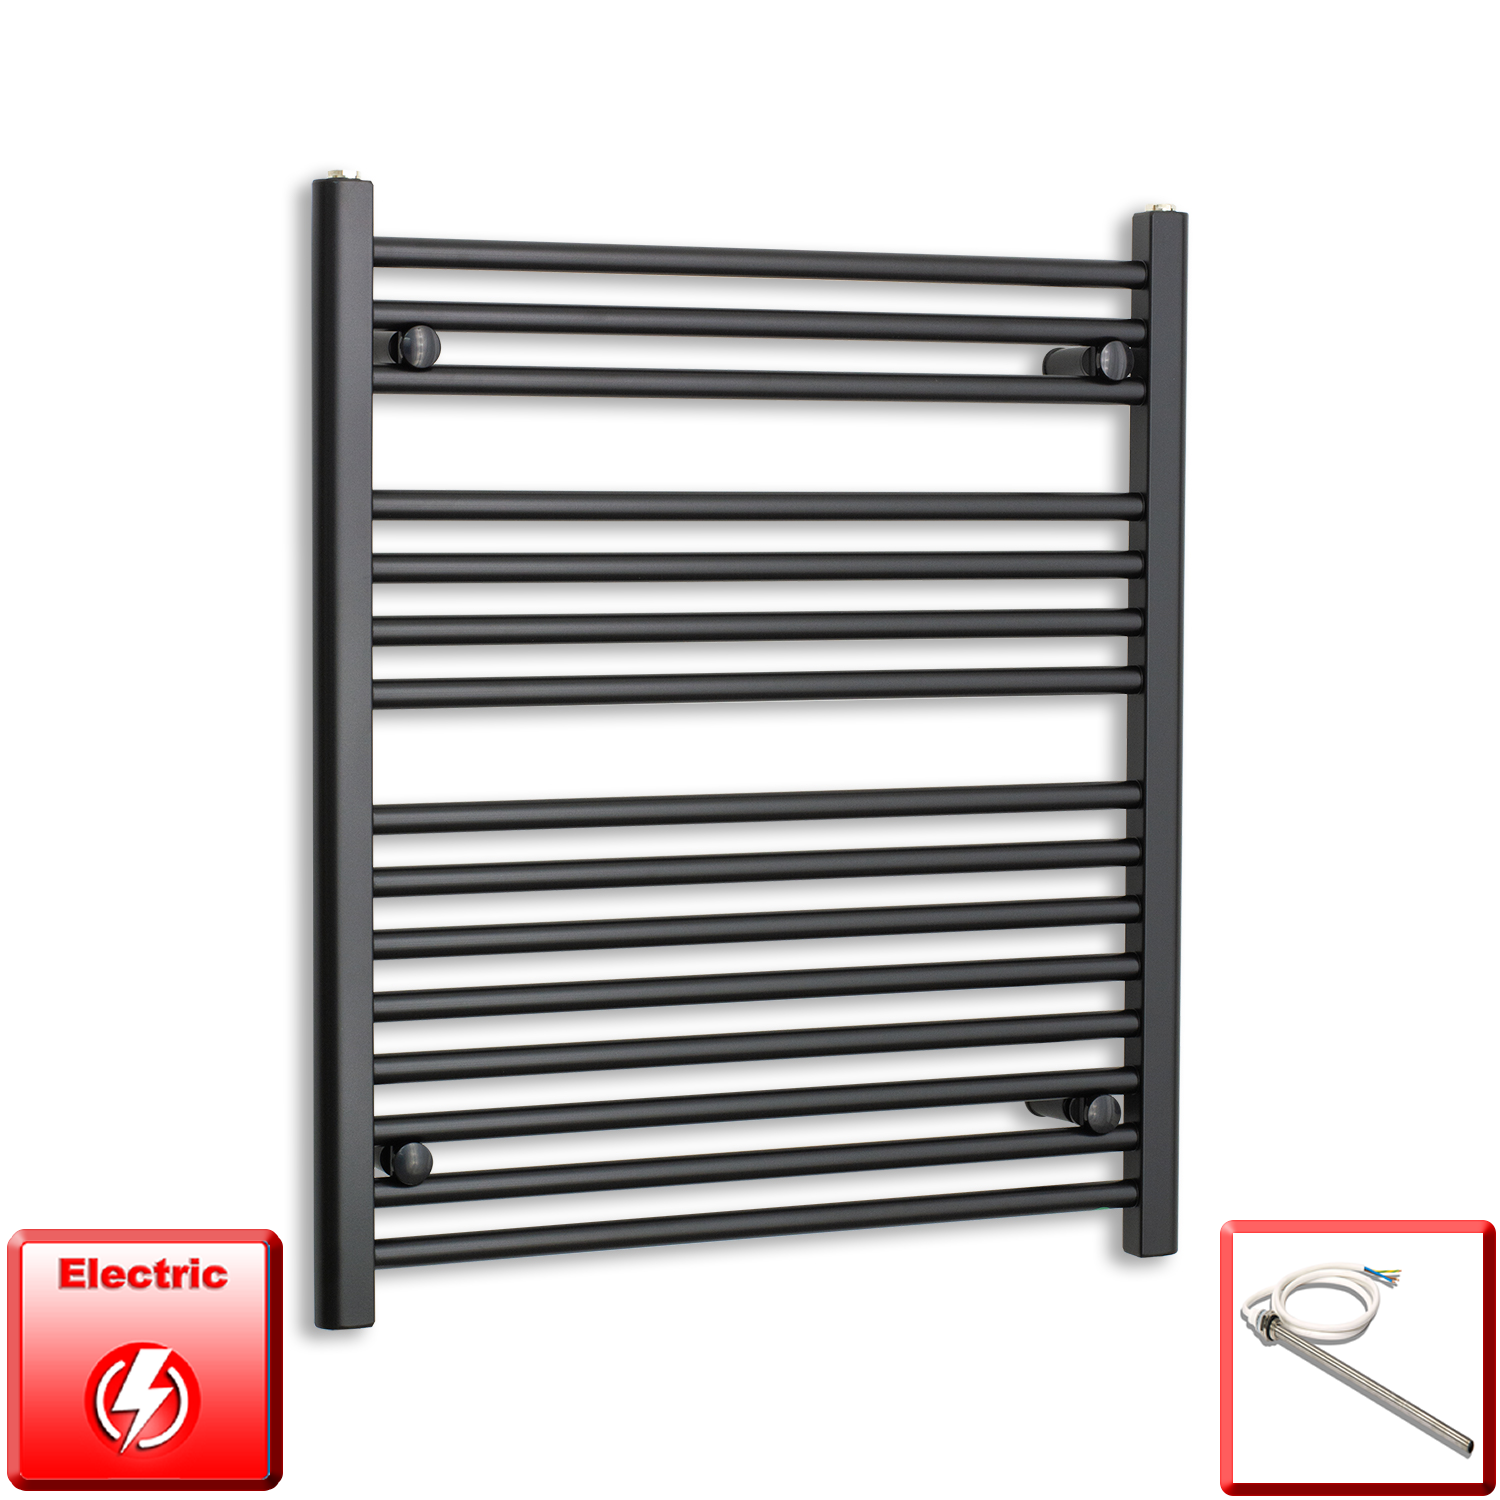 700mm Wide 800mm High Pre-Filled Black Electric Towel Rail Radiator With Thermostatic Single heat Element